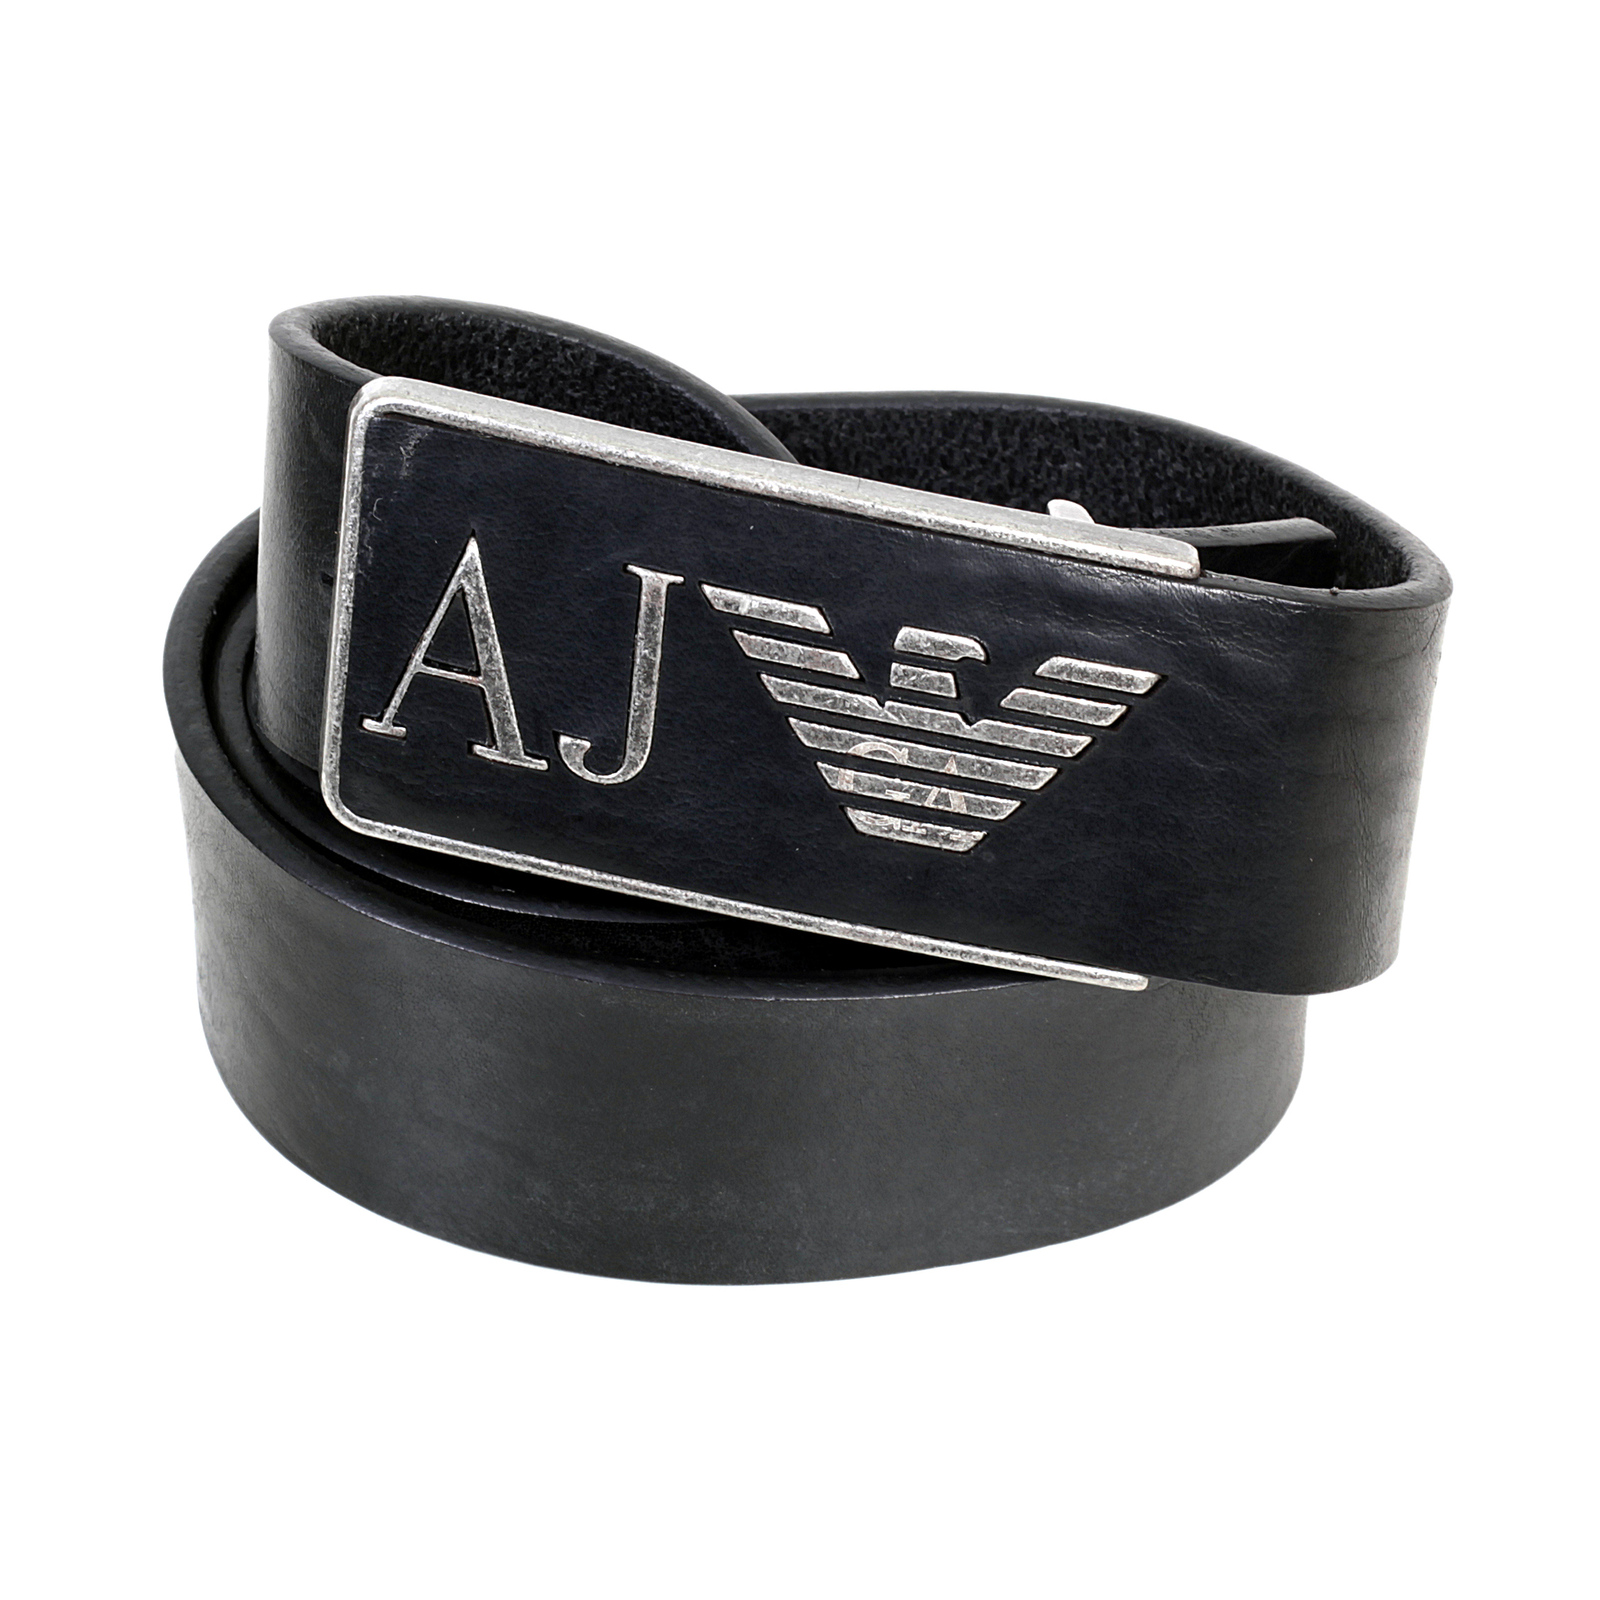 armani belt armani mens black rectangular buckle leather belt ajm4043  oxeqfsz QKMXNLM